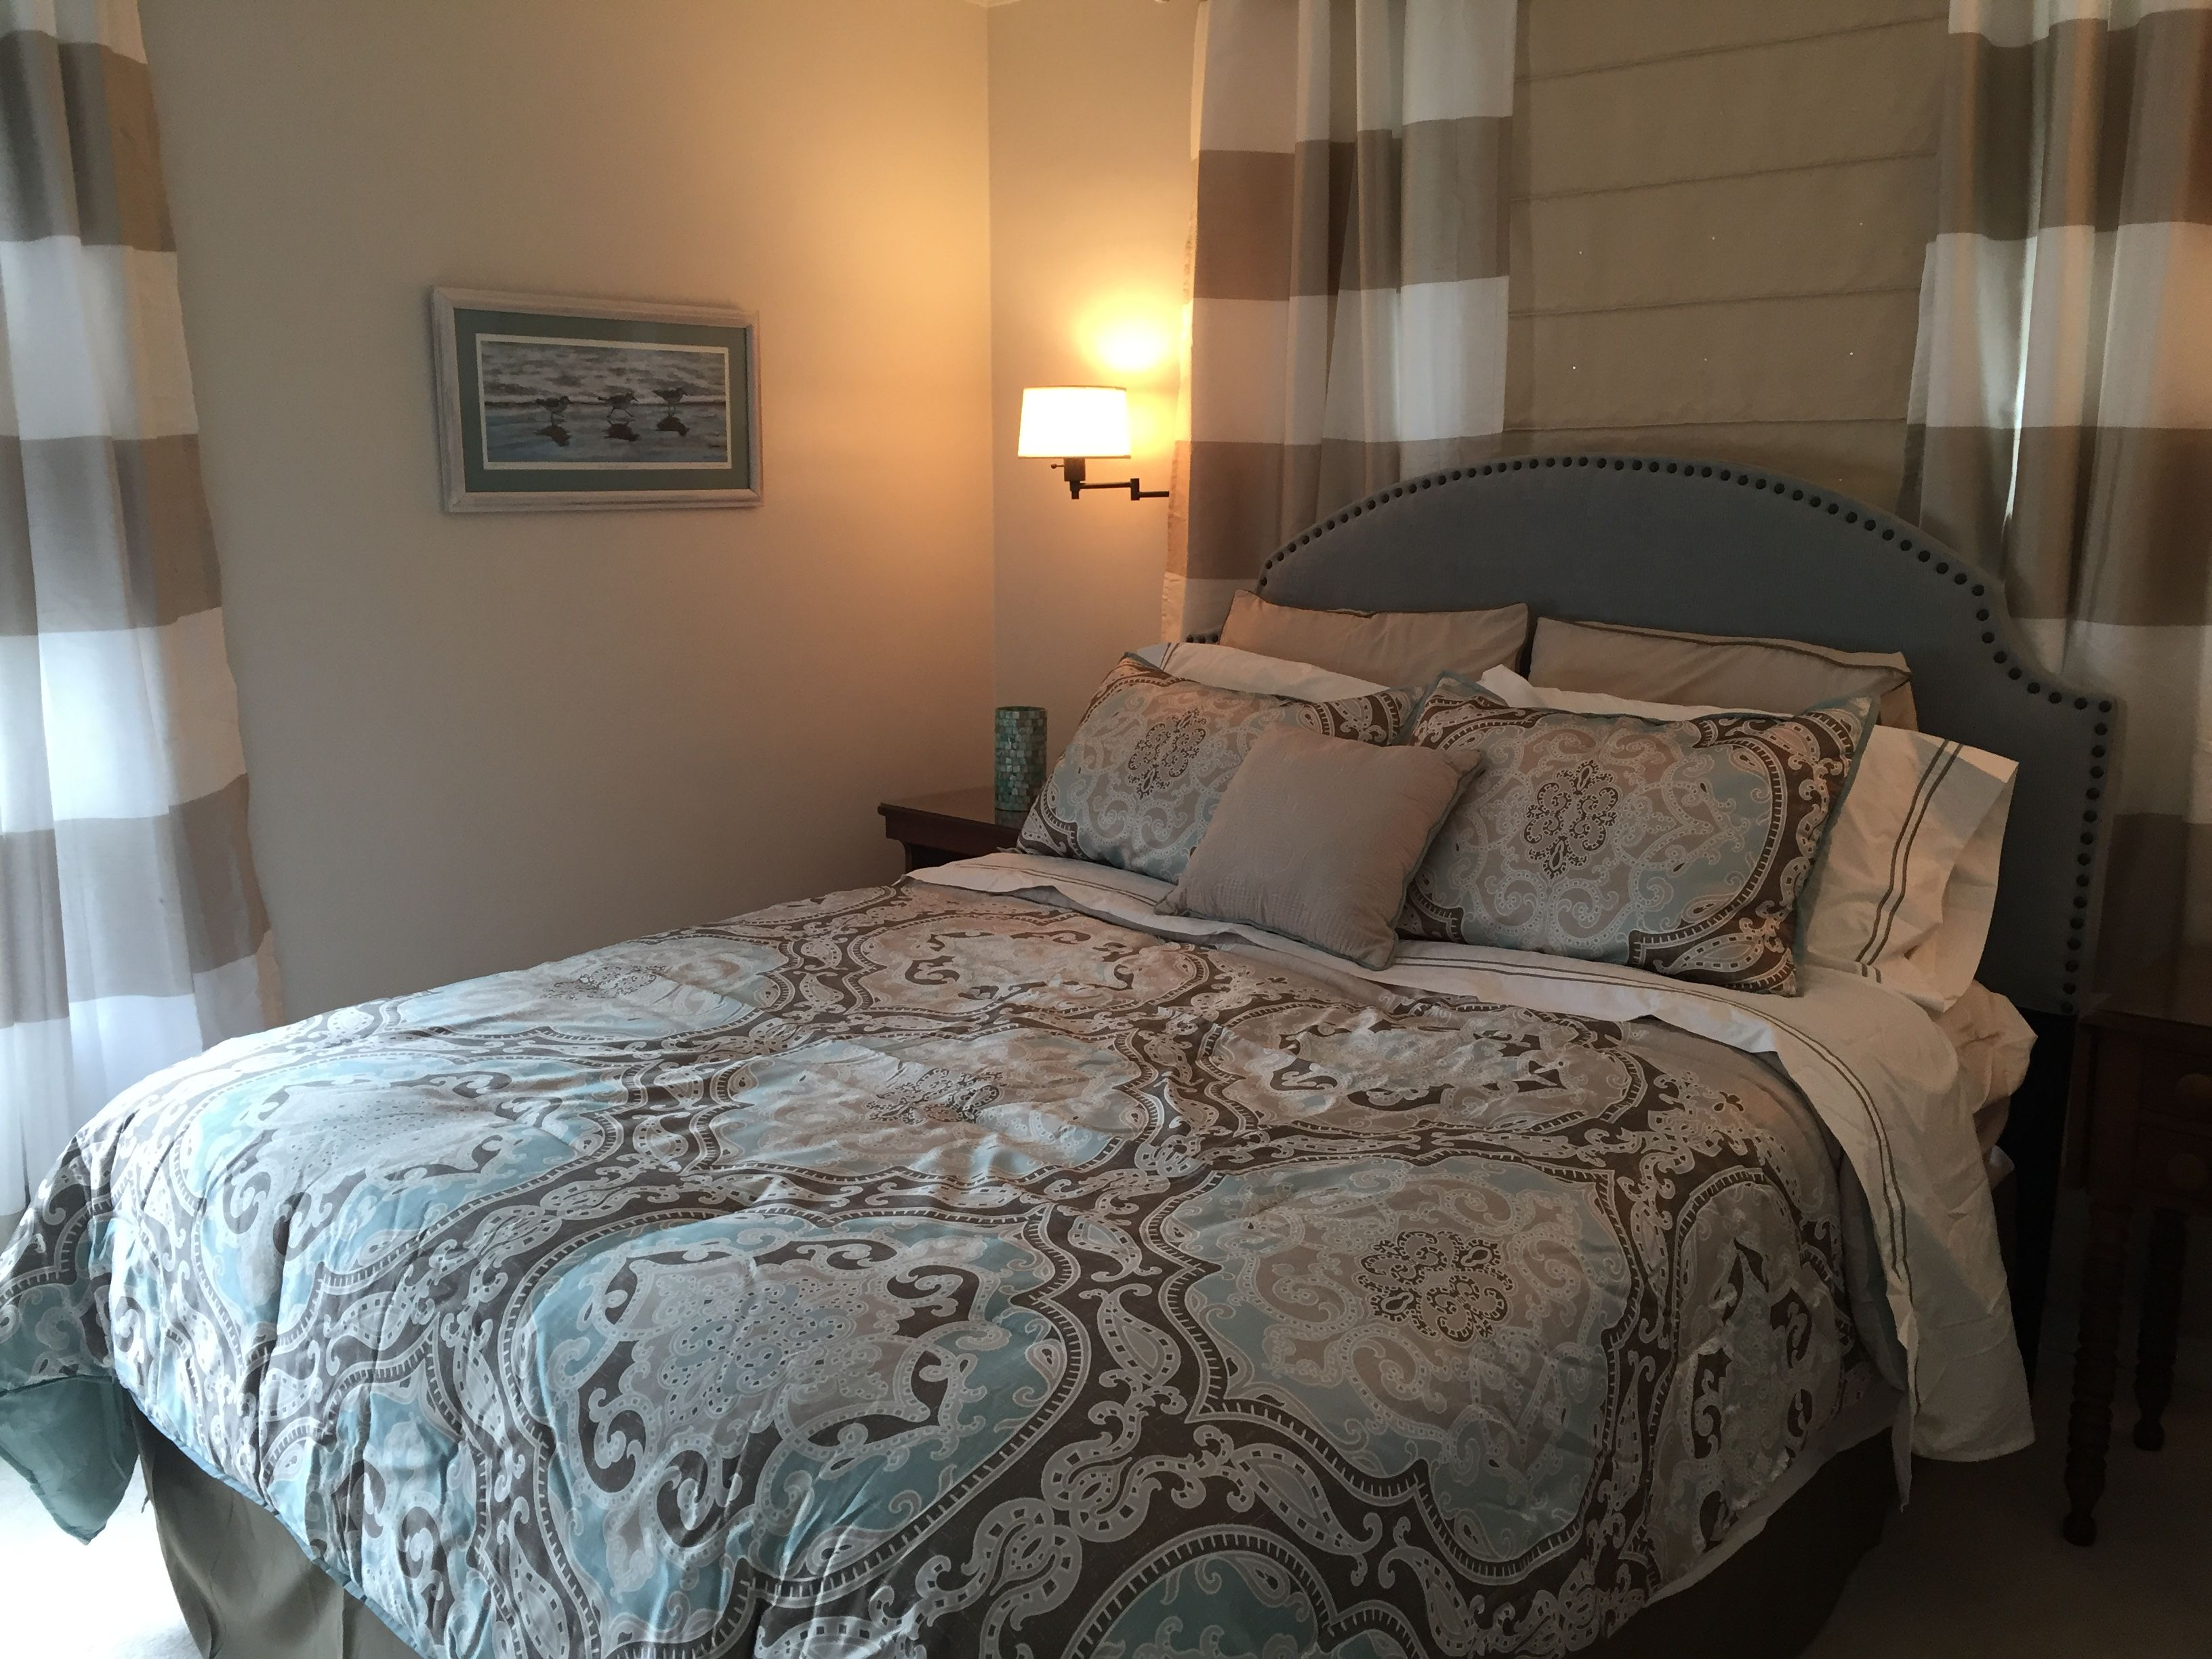 My guest bedroom make over: Headboard -wayfair wall paint -SW shoji white, bedding and drapes (except shades)-Target.